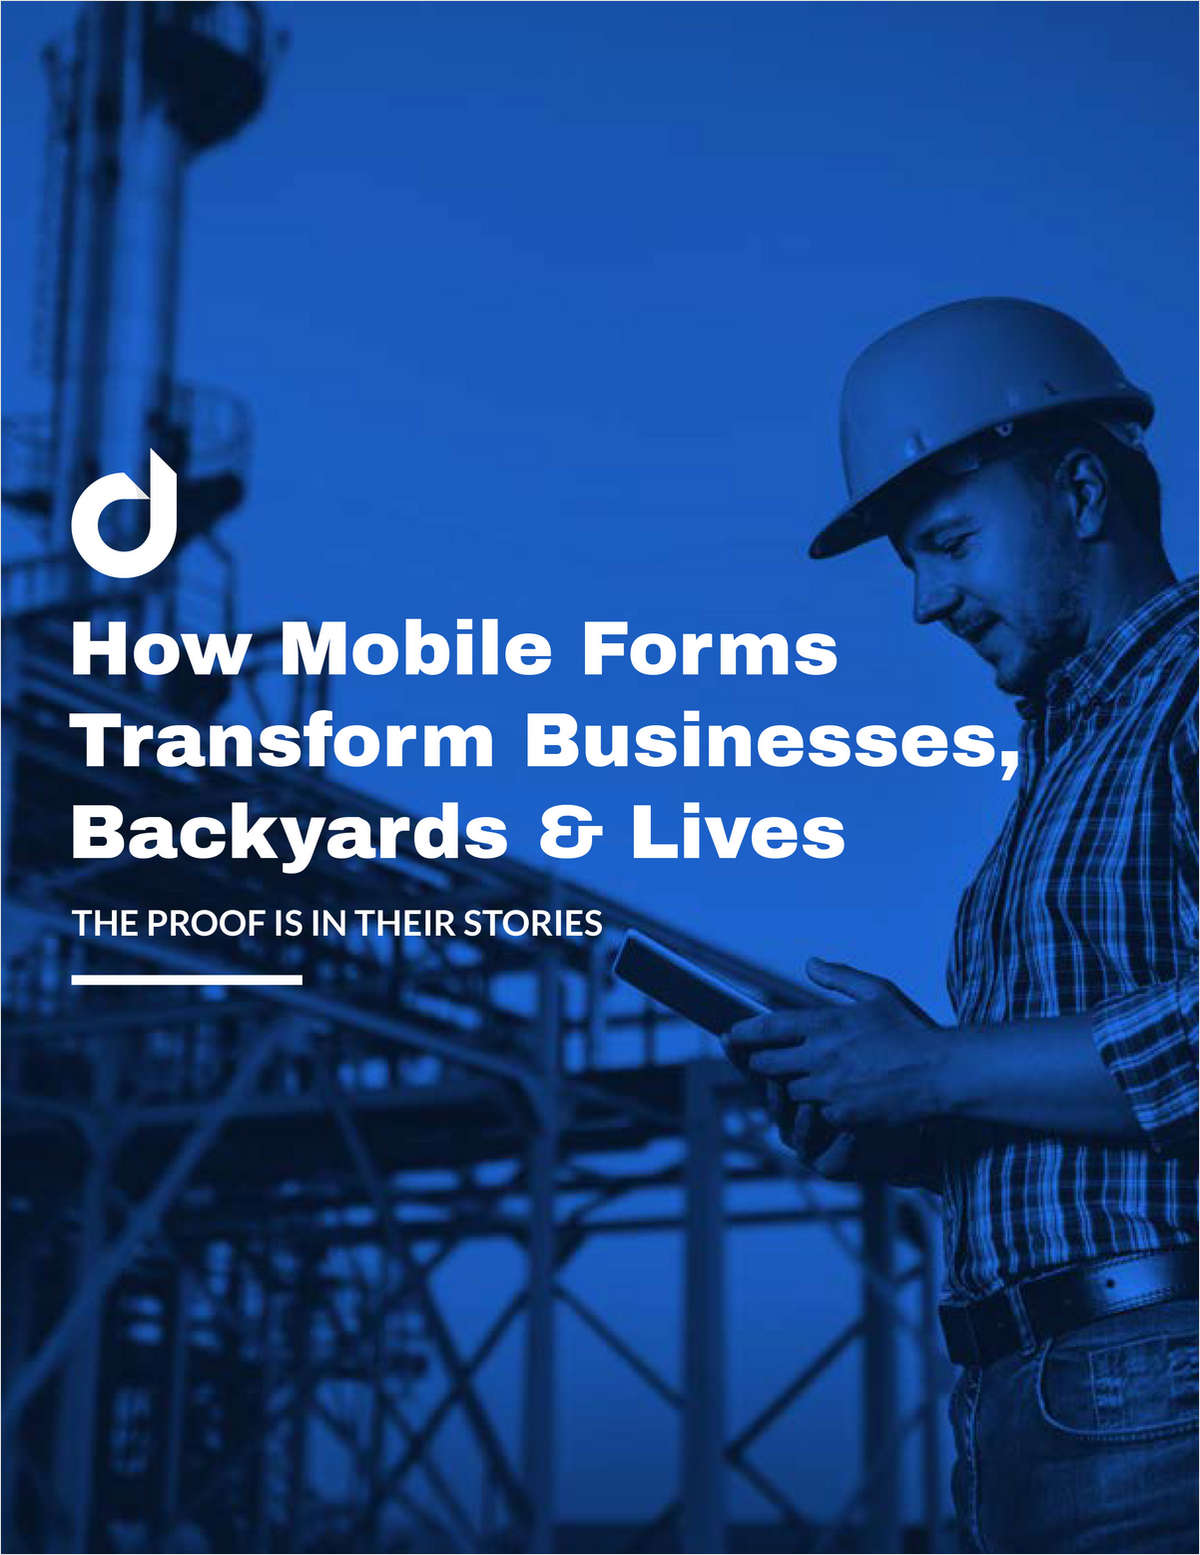 How Mobile Forms Transform Businesses, Backyards, and Lives